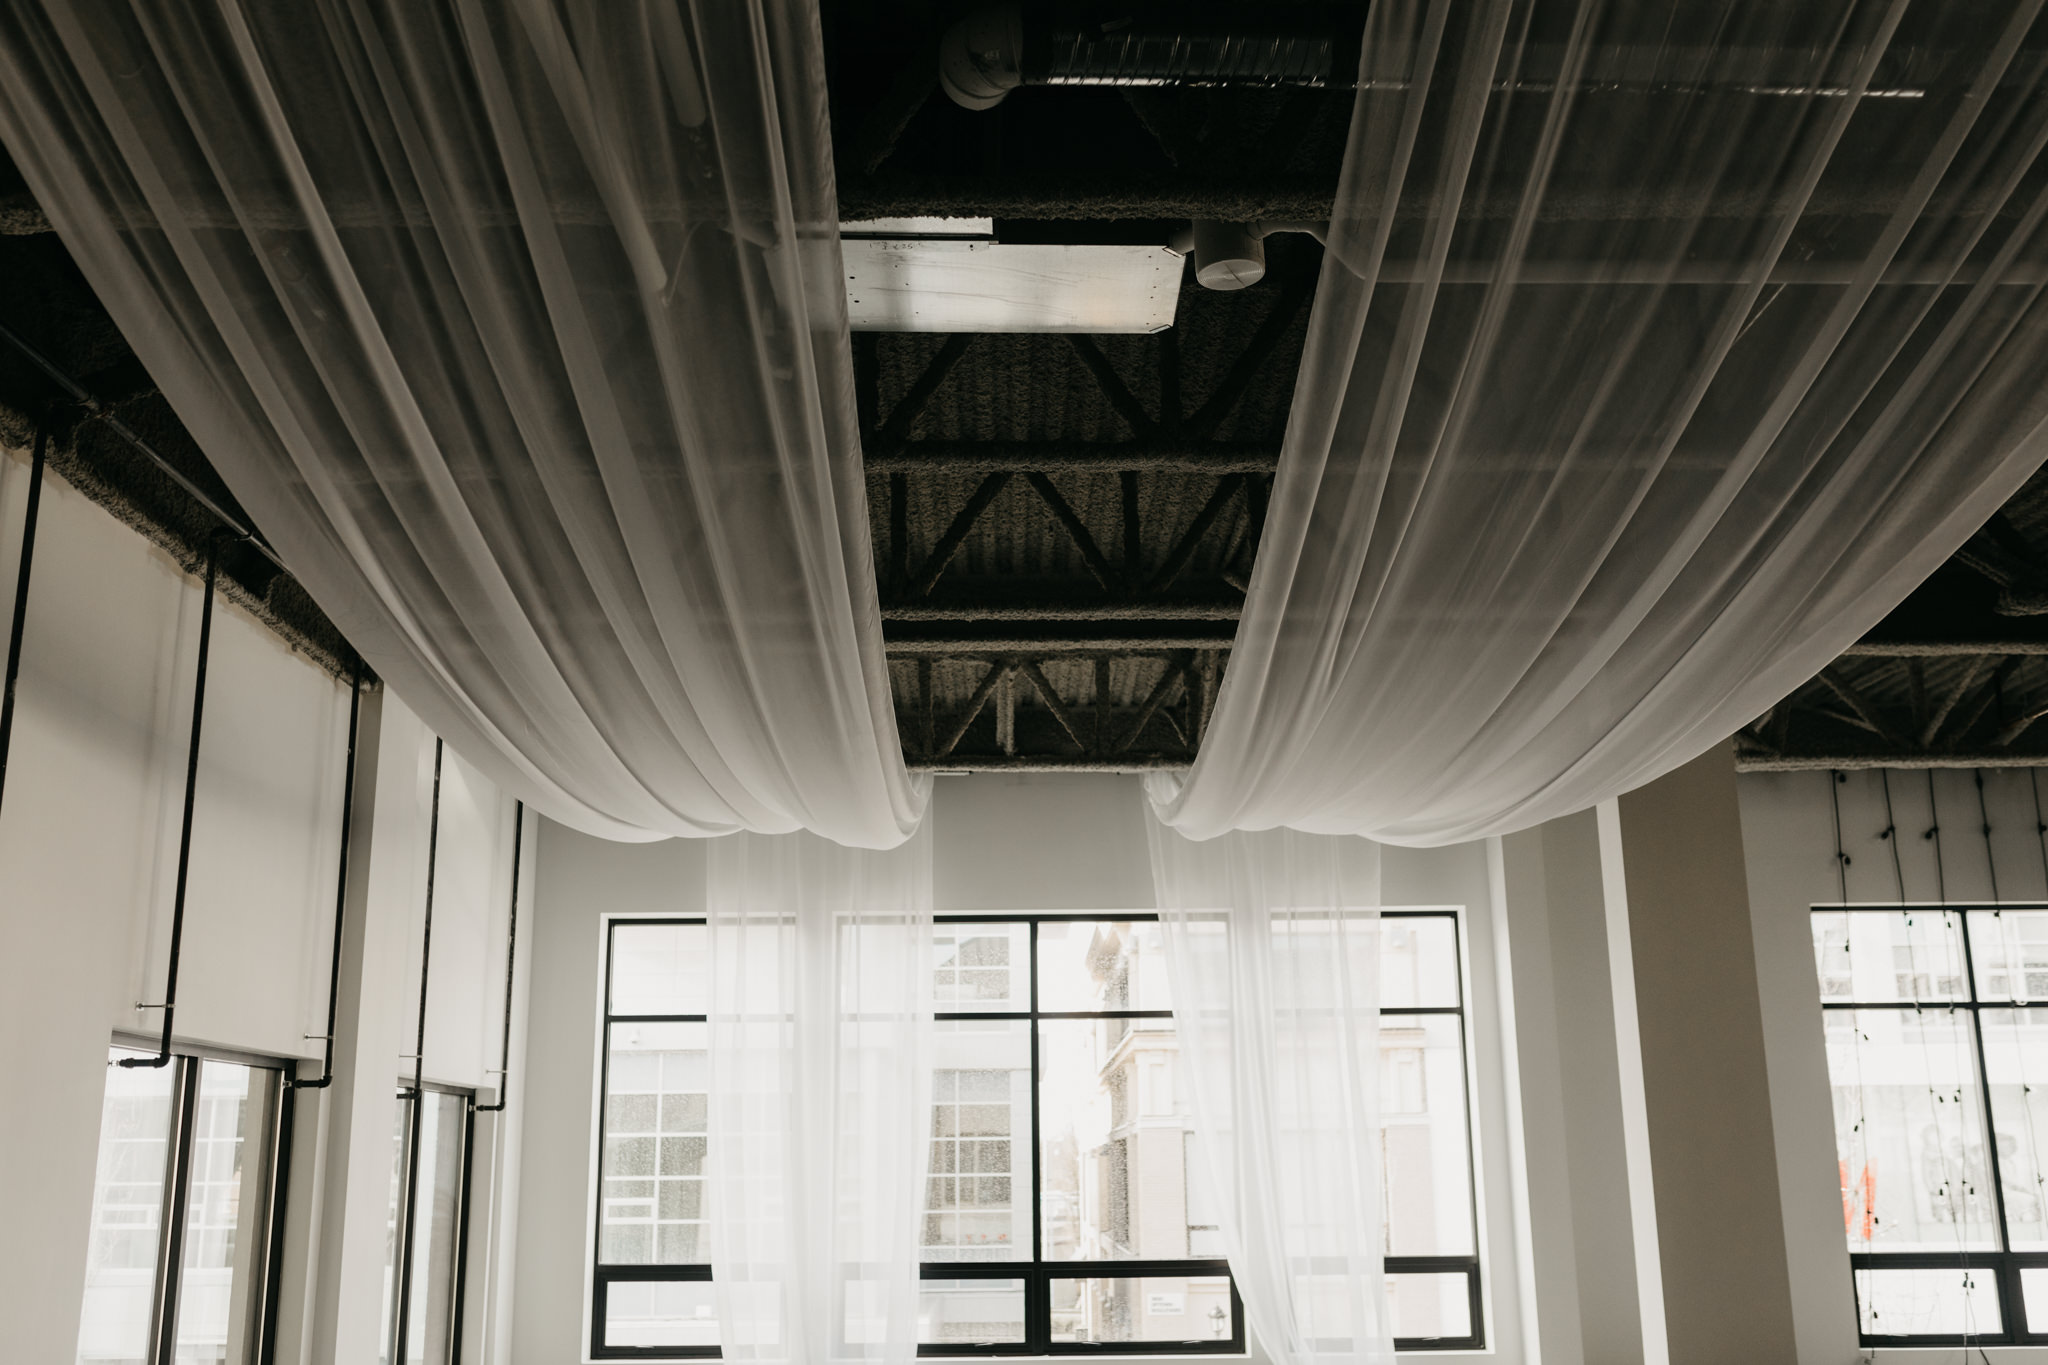 Ceiling Sails Package